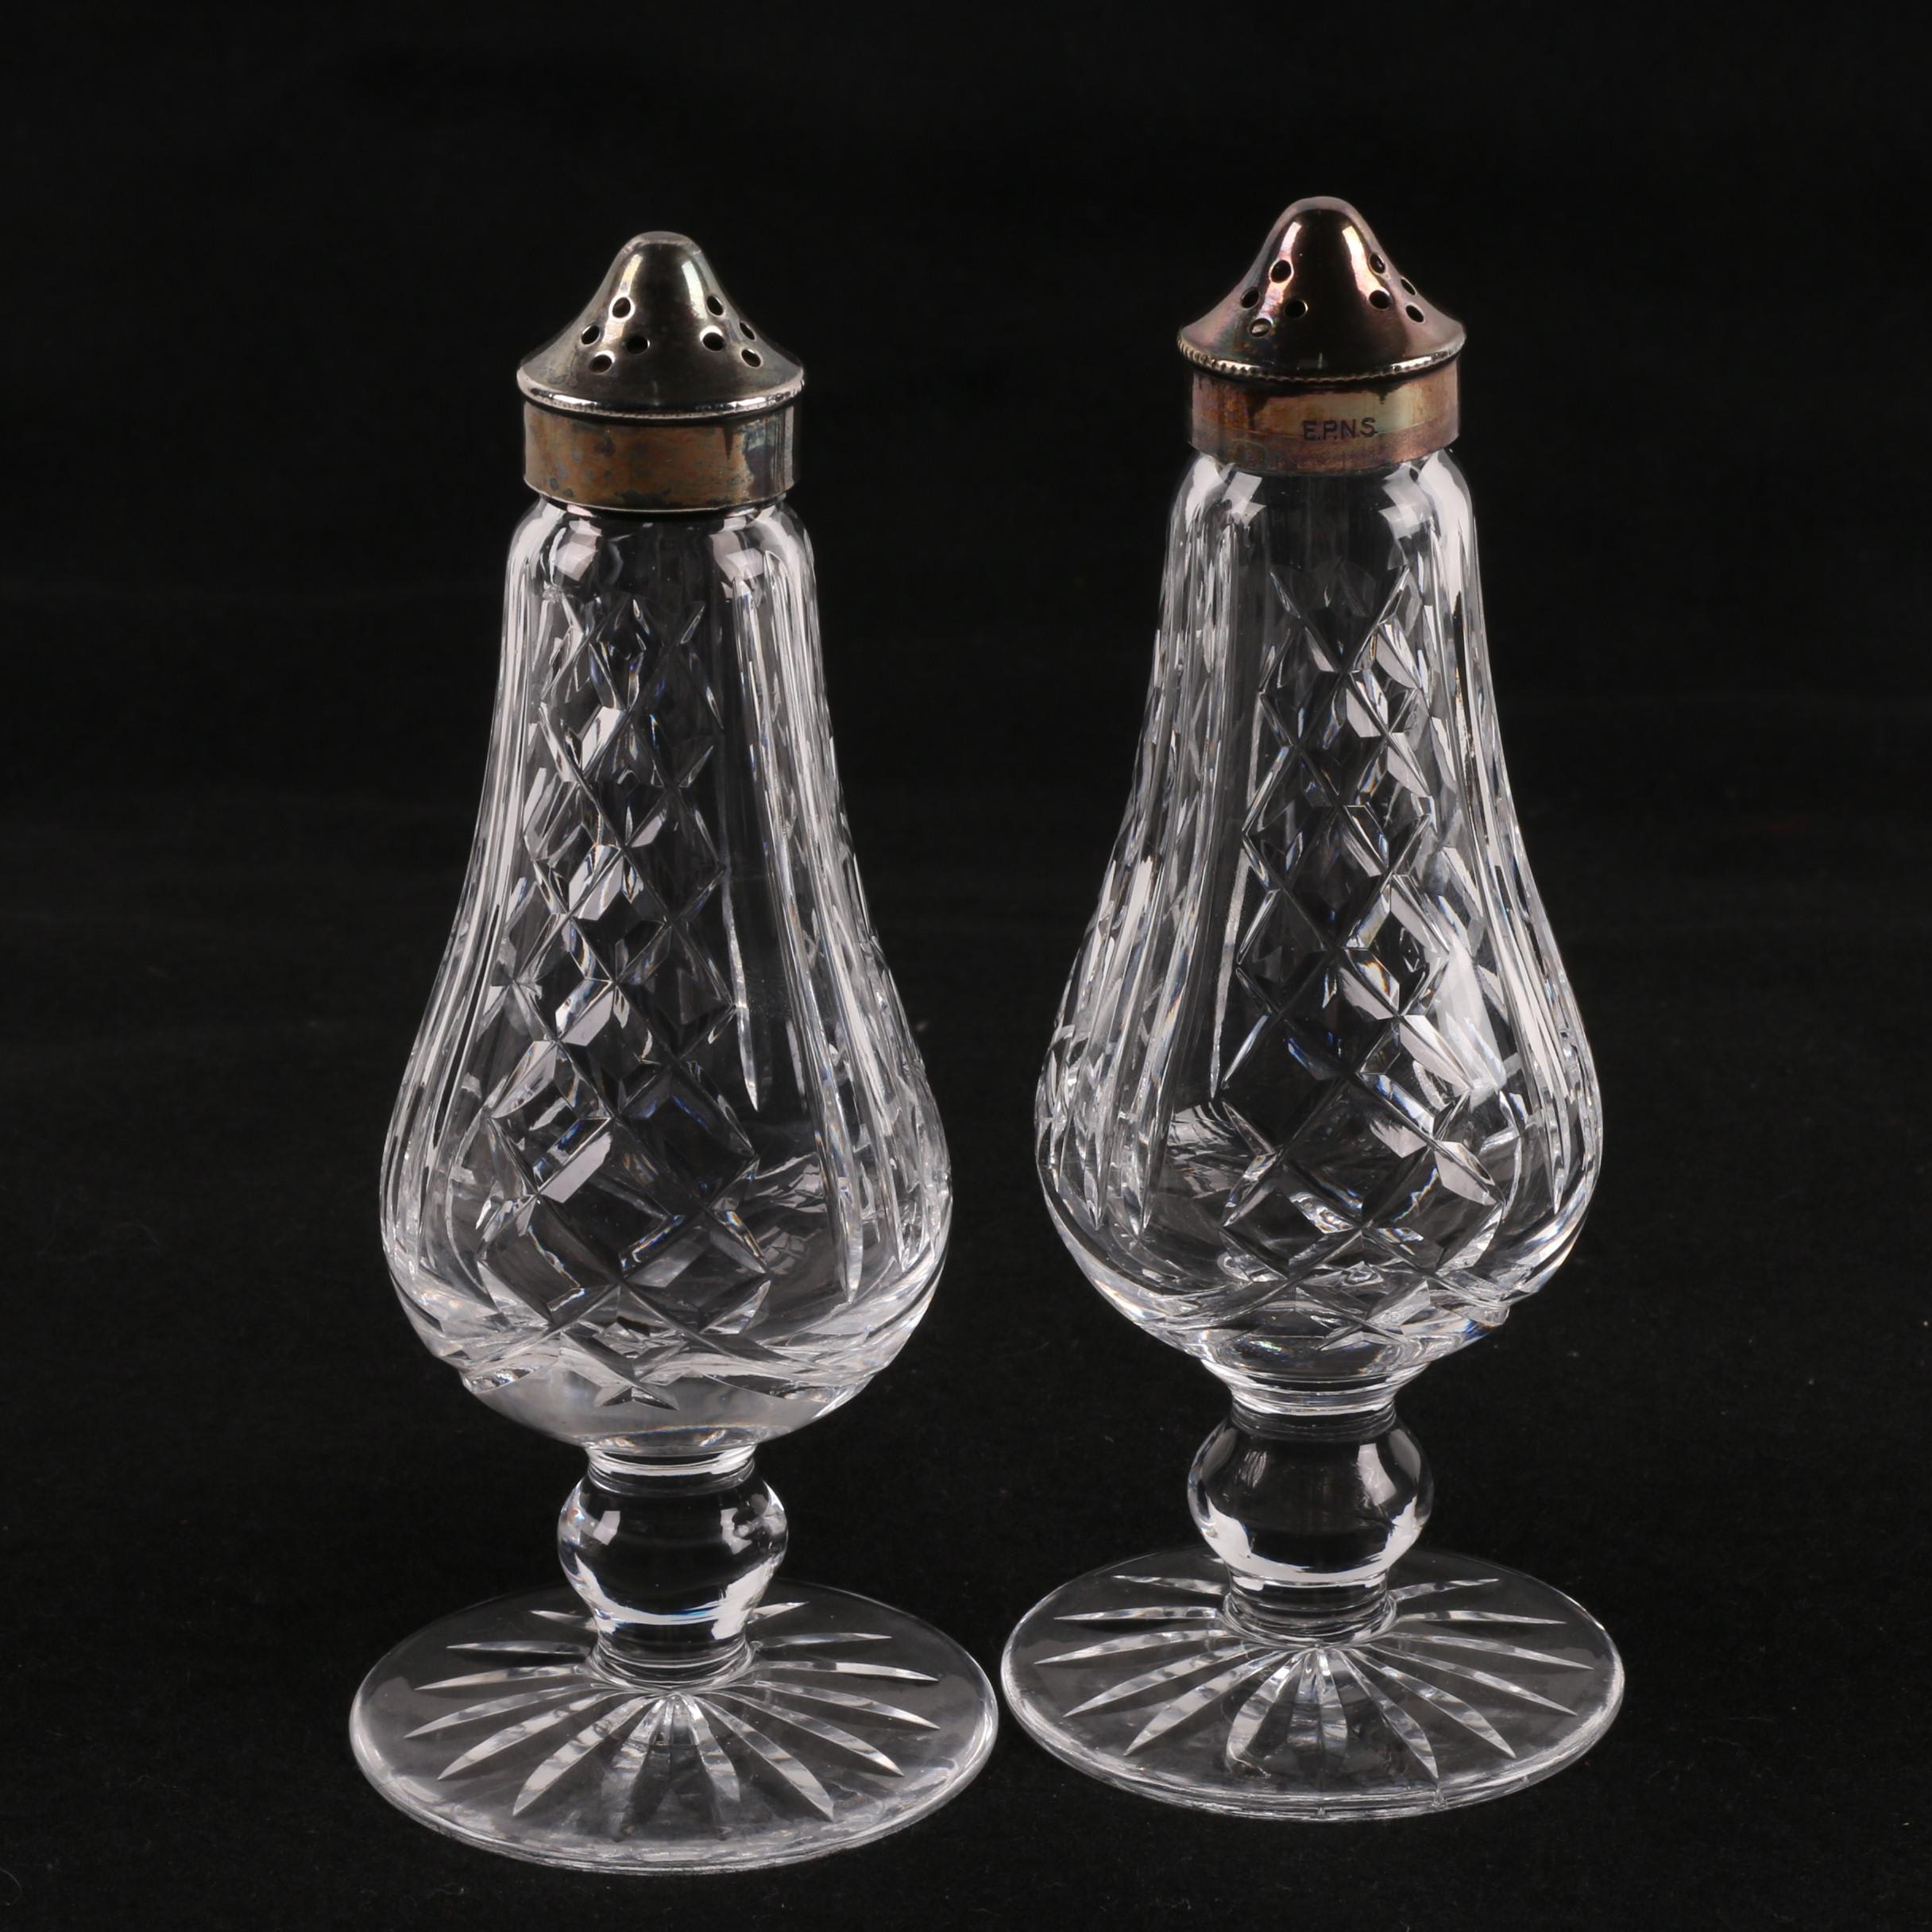 Waterford Crystal Salt and Pepper Shakers with Silver Plated Caps